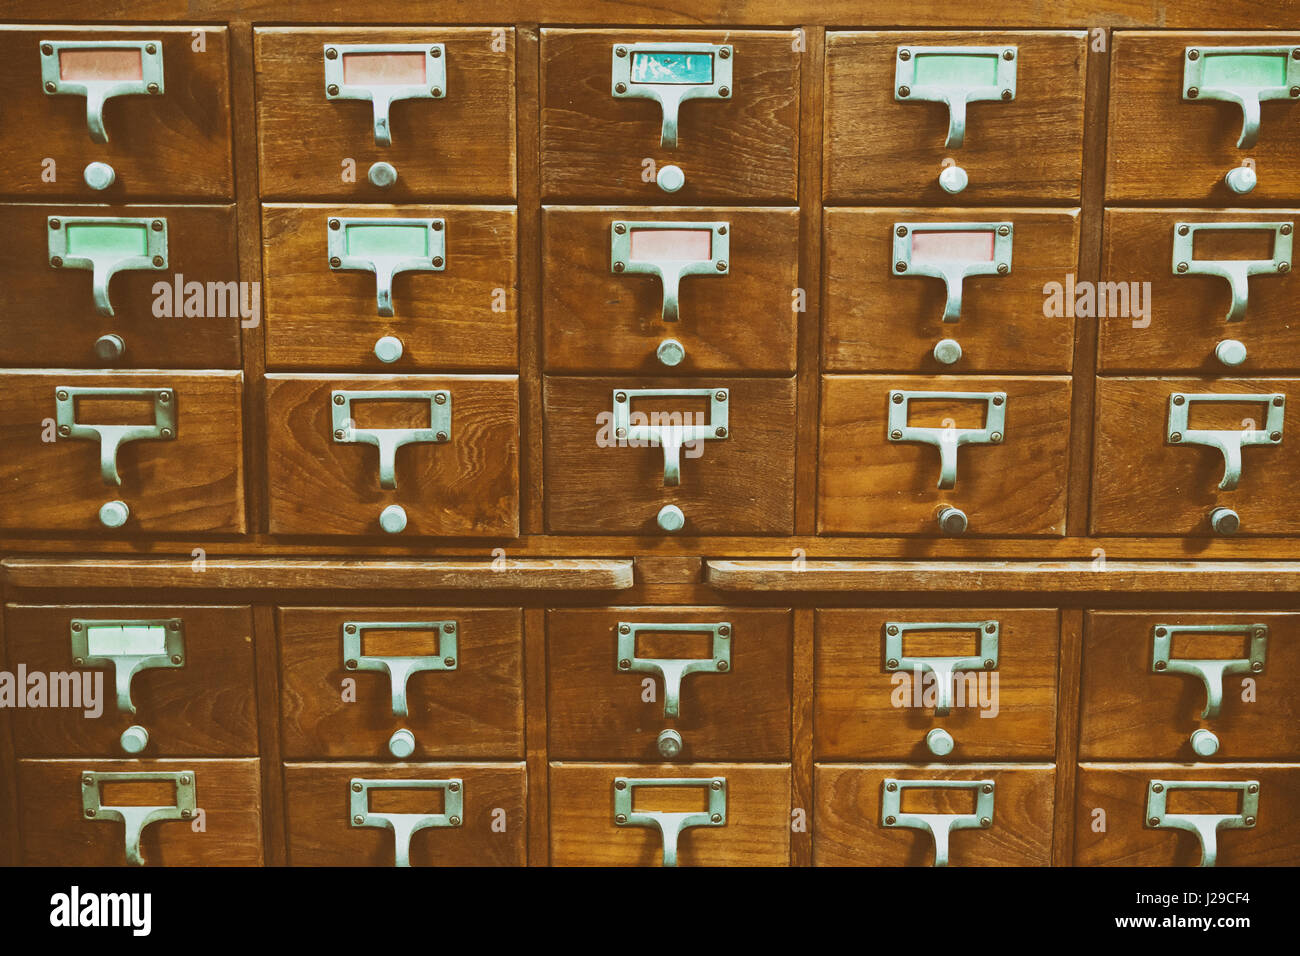 An Old Style Wooden Cabinet Of Library Card Or File Catalog Index Drawers  With Label Holders And Blank Labels Facing Front, Database Concept.